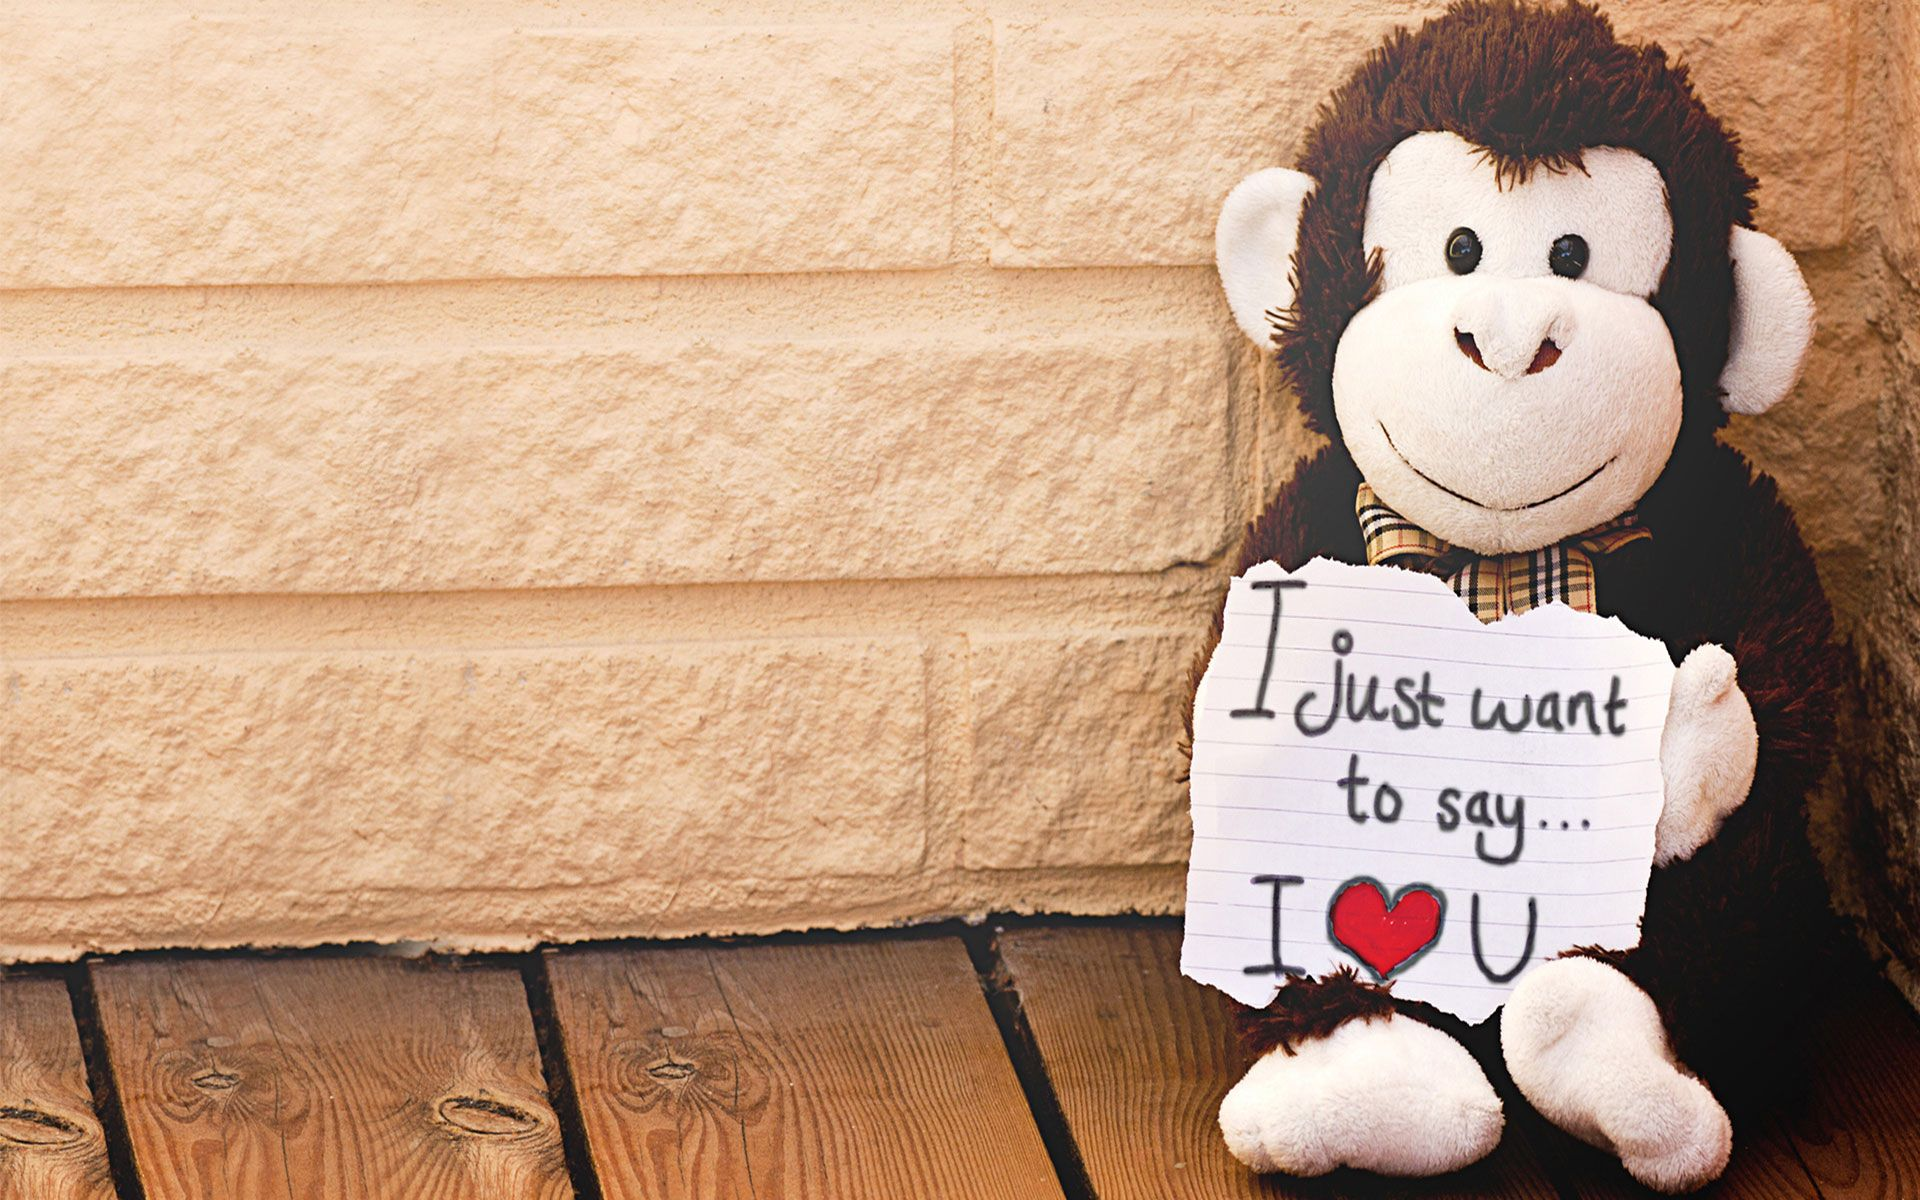 I Just Want To Say I Love You Wallpaper Monkey Doll Craft Ideas